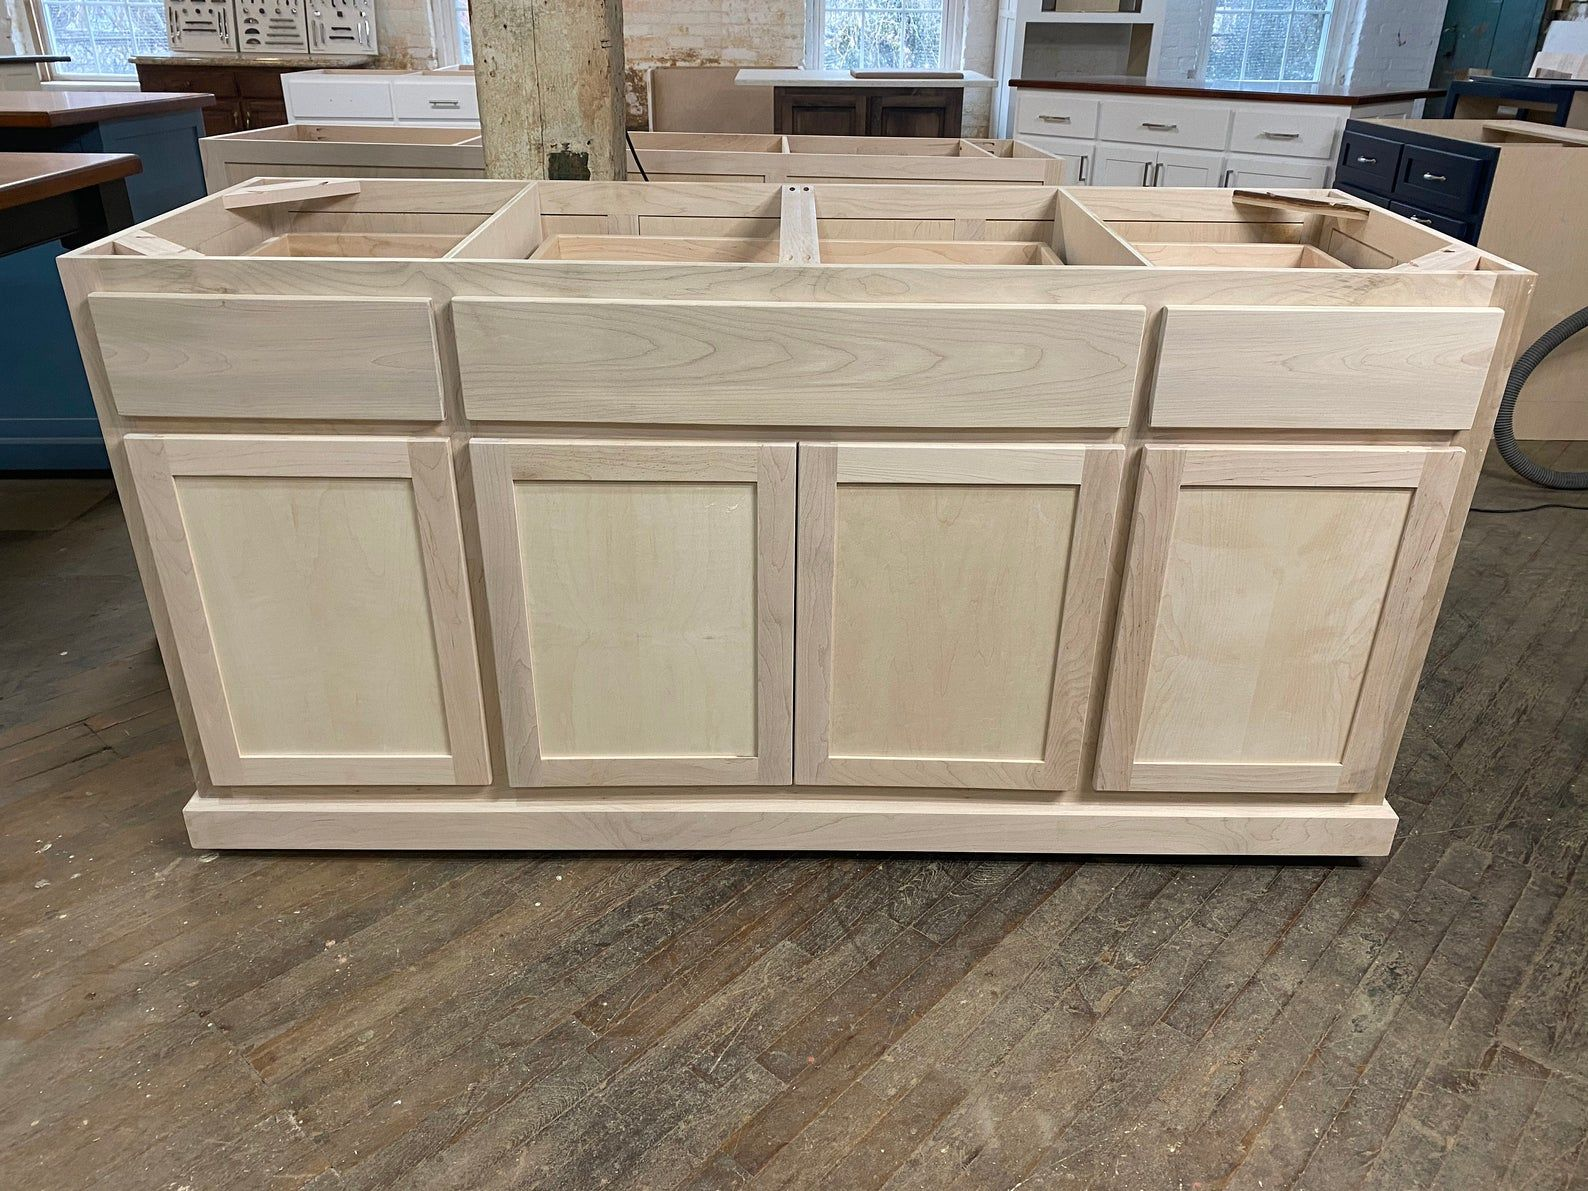 Diy Ready To Paint Cabinet Kitchen Island Custom In 2021 Kitchen Island Cabinets Custom Kitchen Island Kitchen Island With Seating